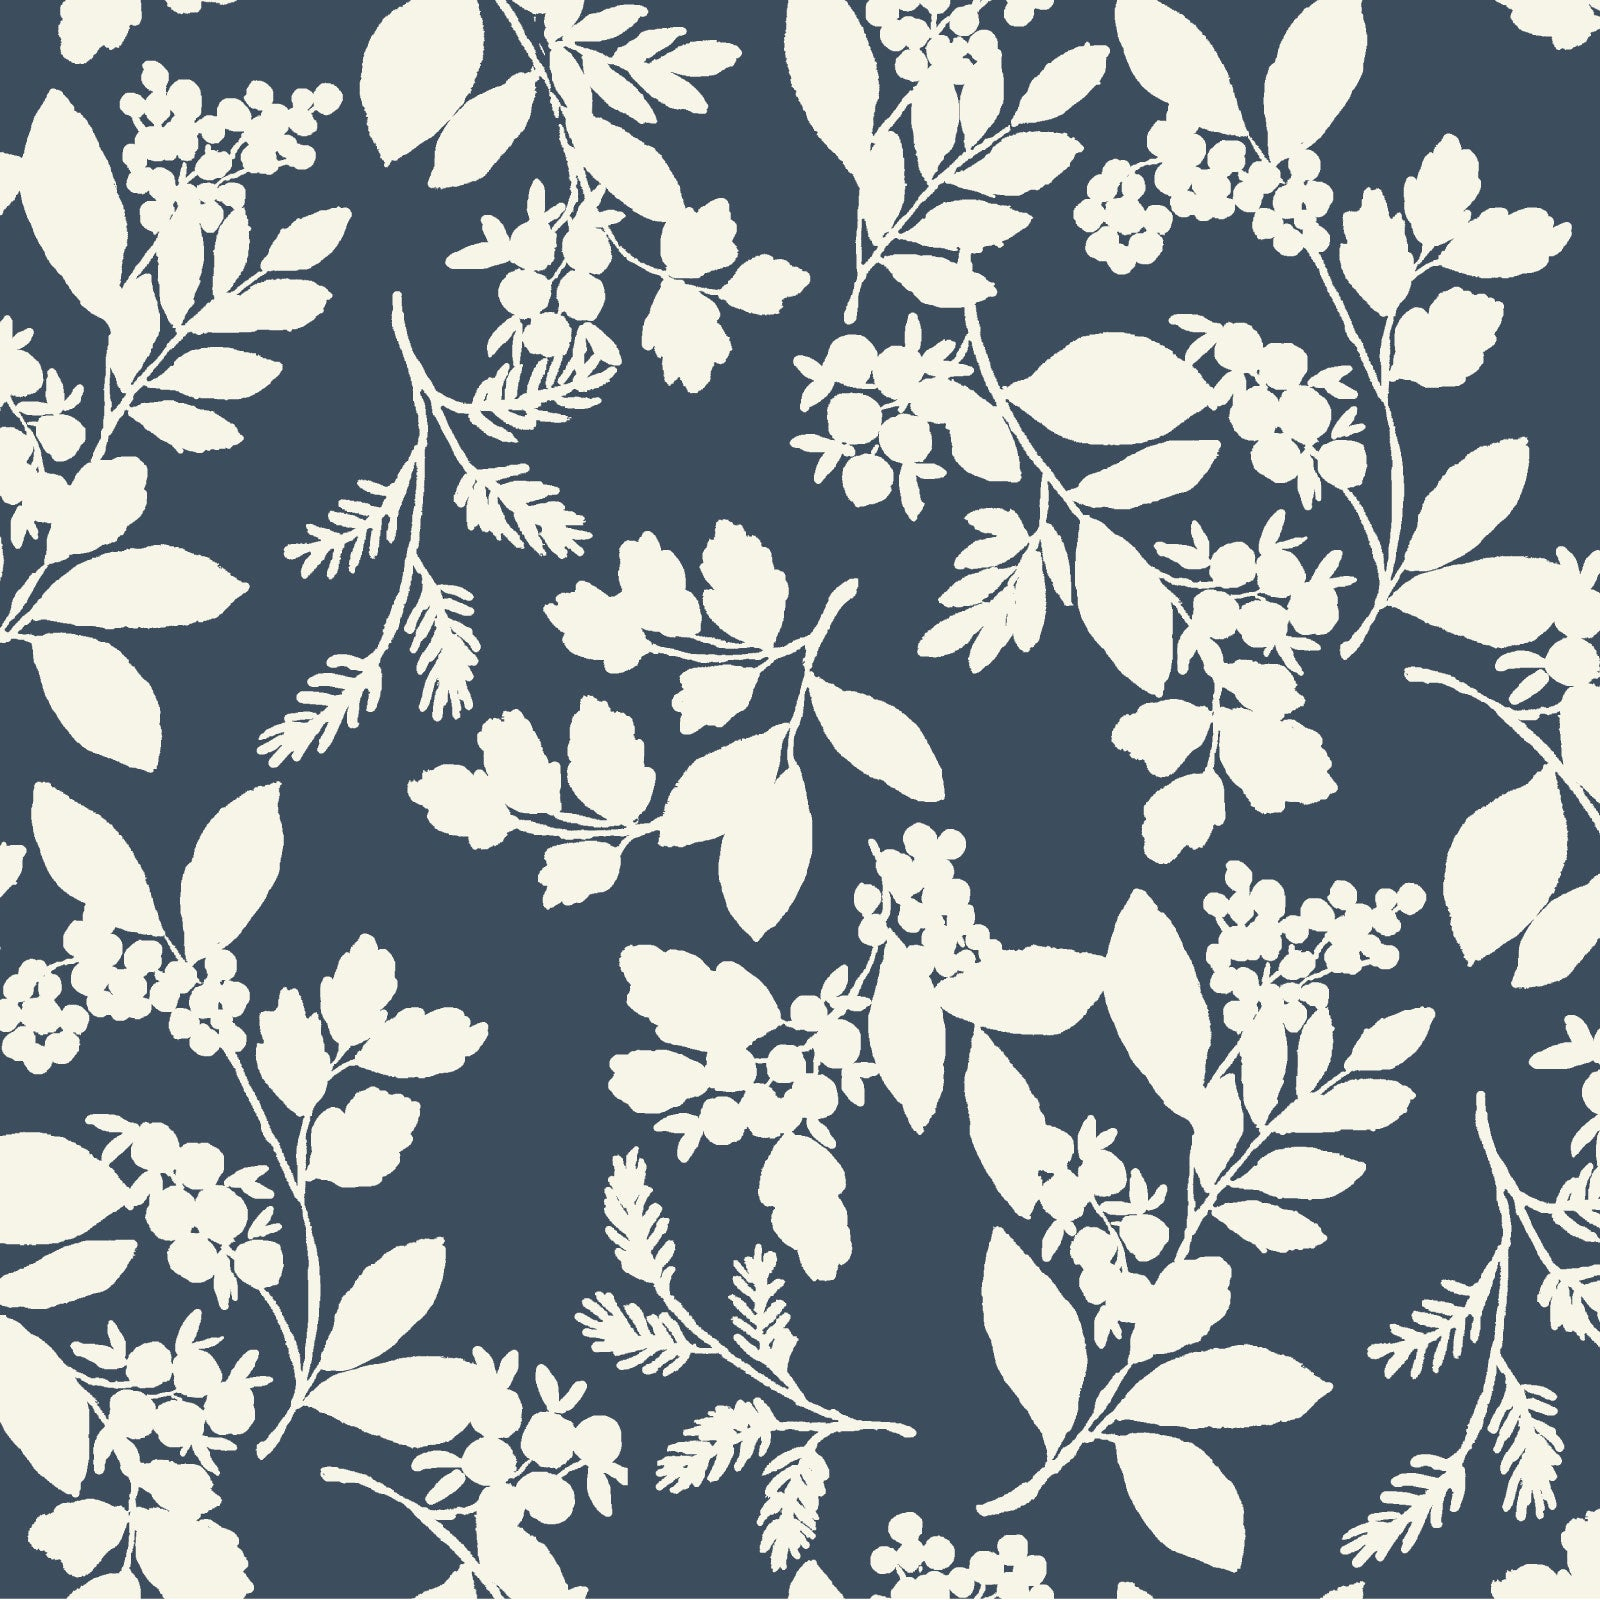 Winter Berry Fabric in Navy and White